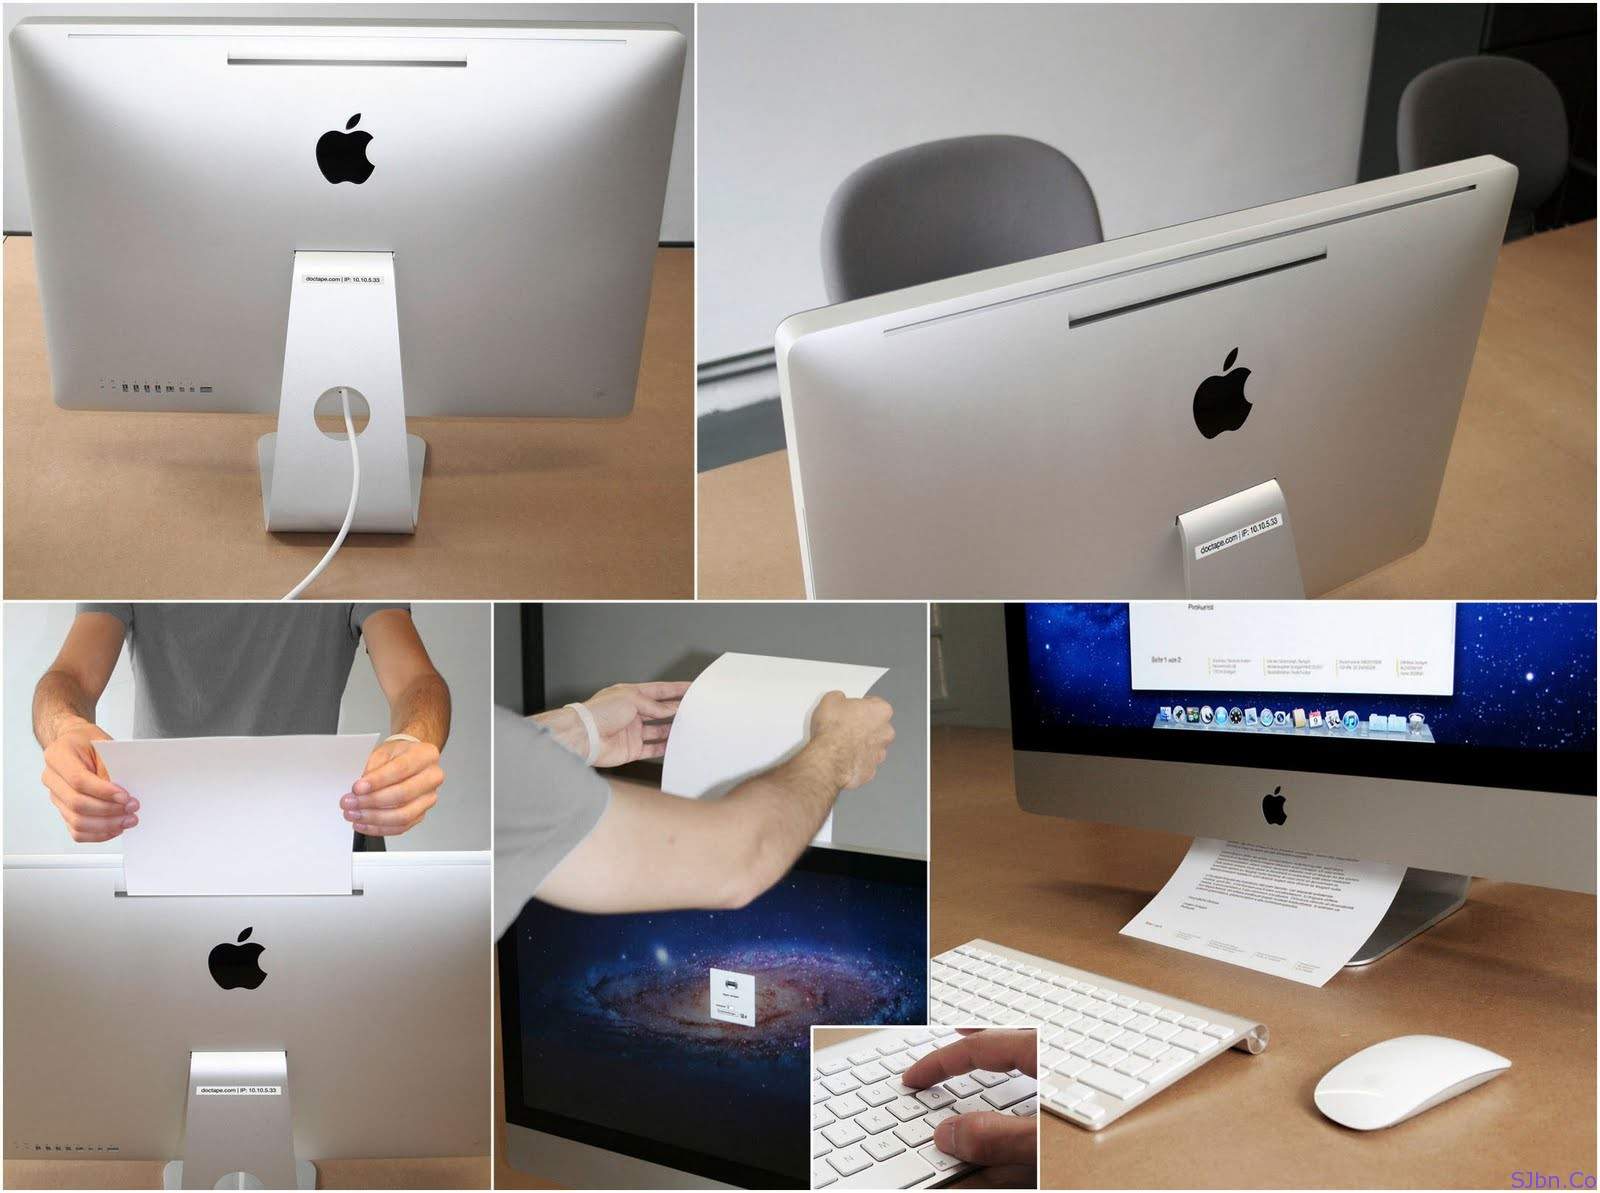 iMac with iPrinter